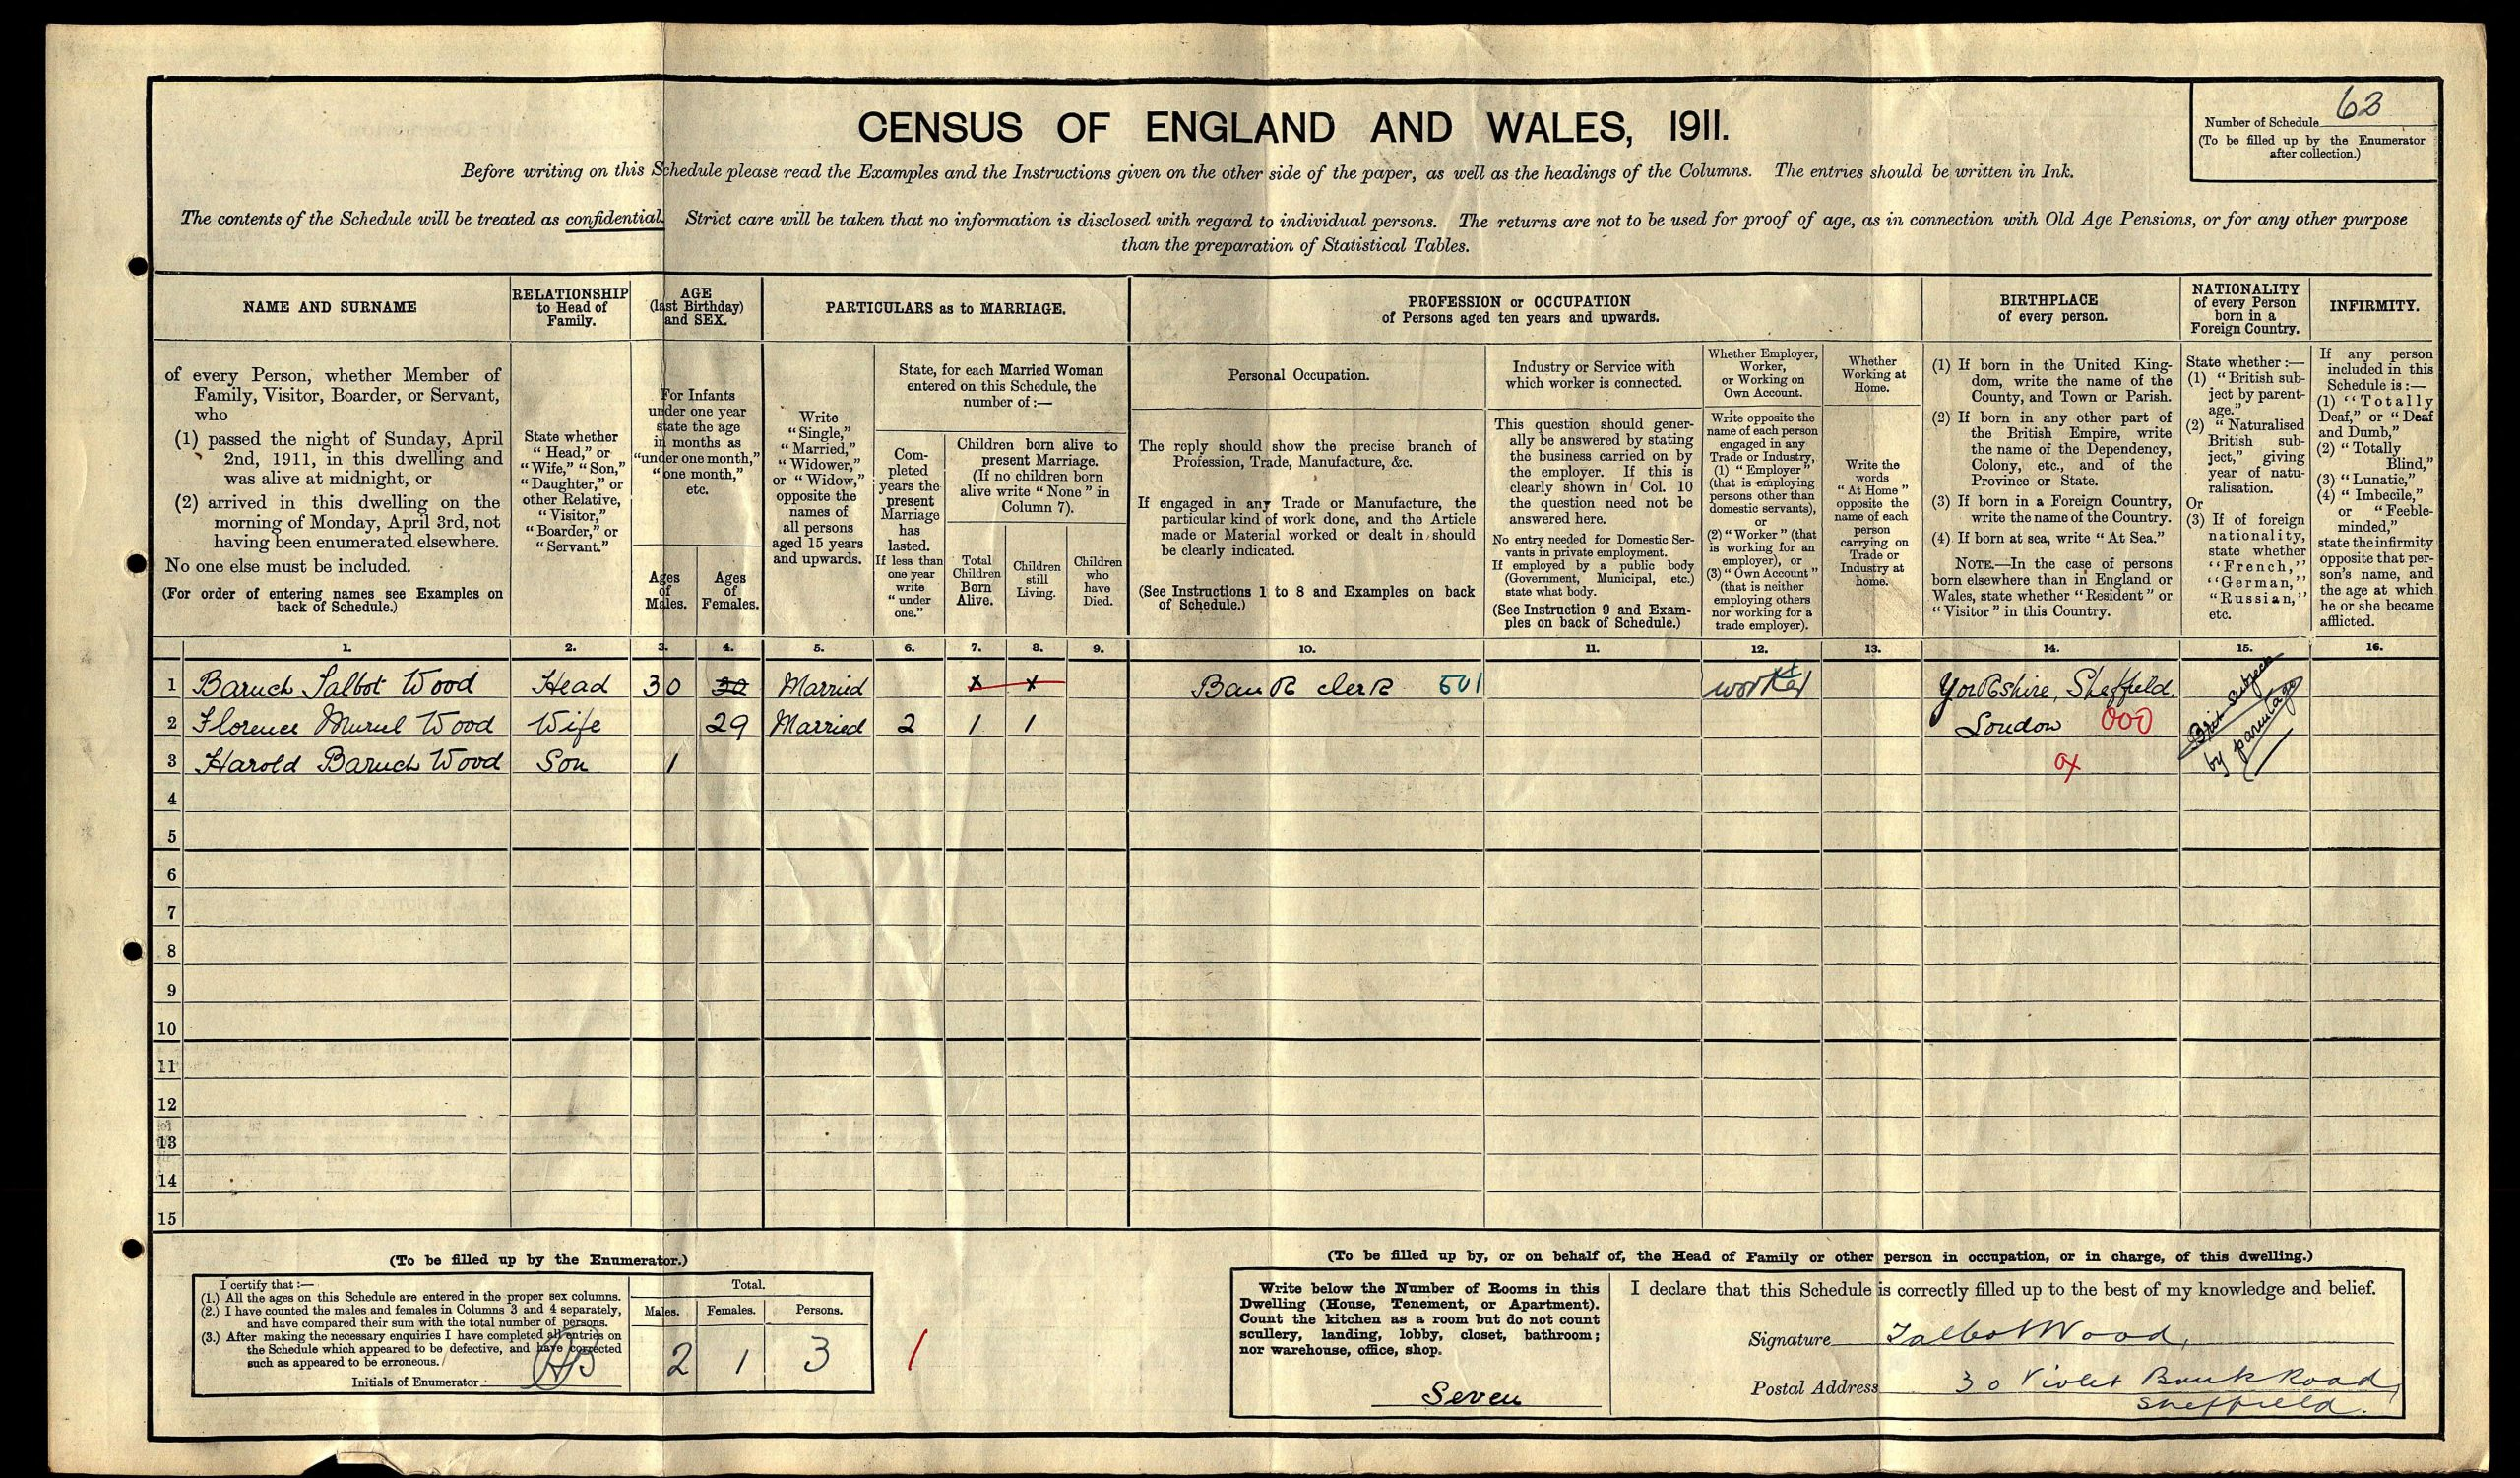 1911 Census record for the Wood household